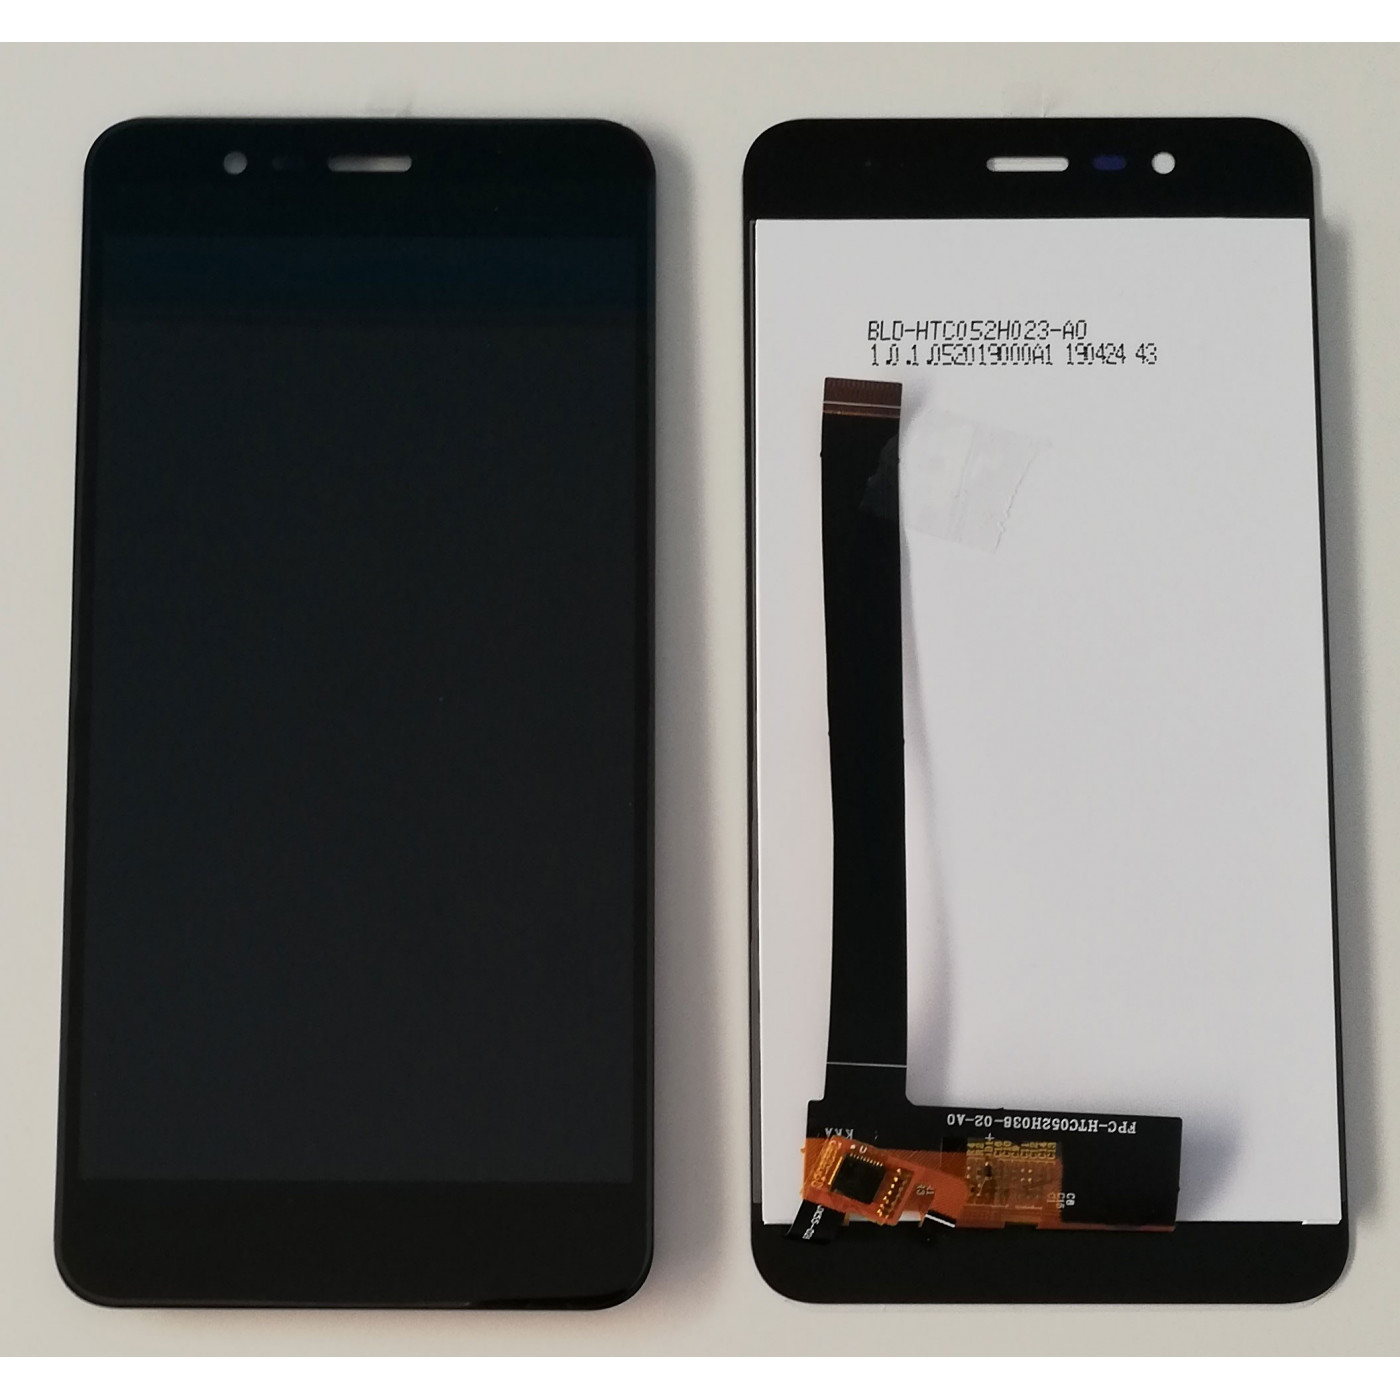 TOUCH SCREEN GLASS + LCD DISPLAY For Asus ZENFONE 3 MAX ZC520TL Black